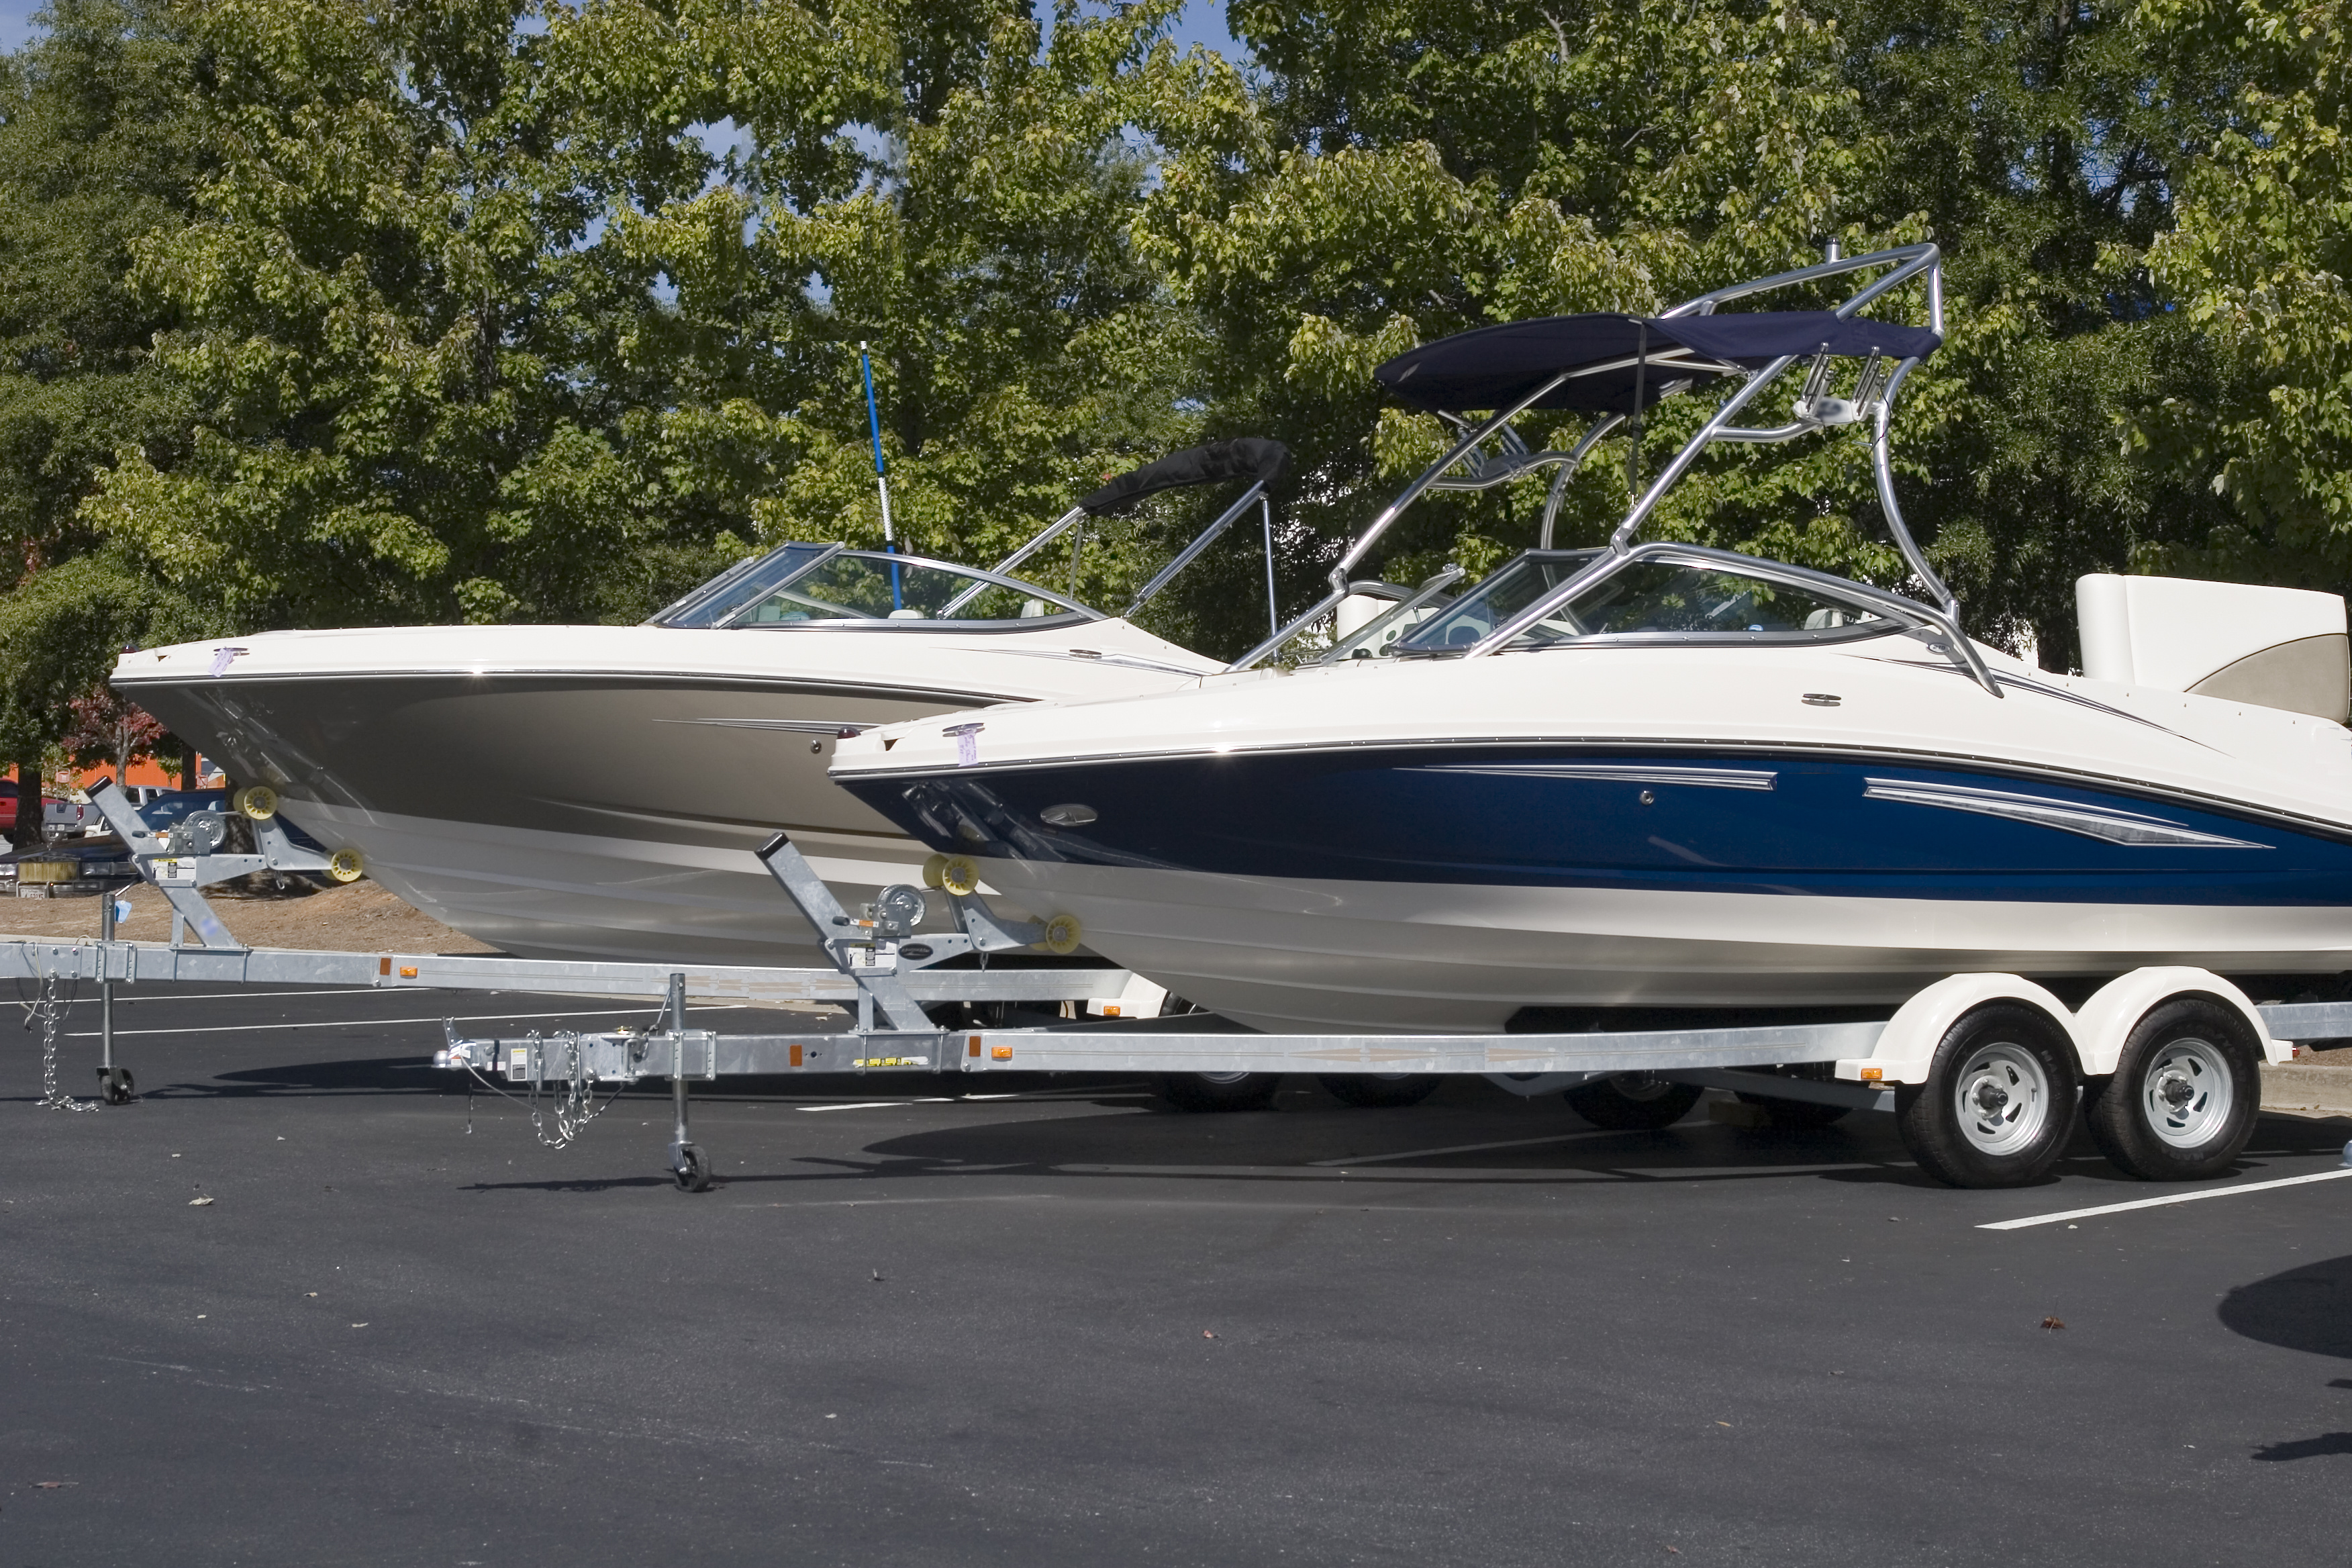 RV & Boat Storage in Pleasant Hill, IA